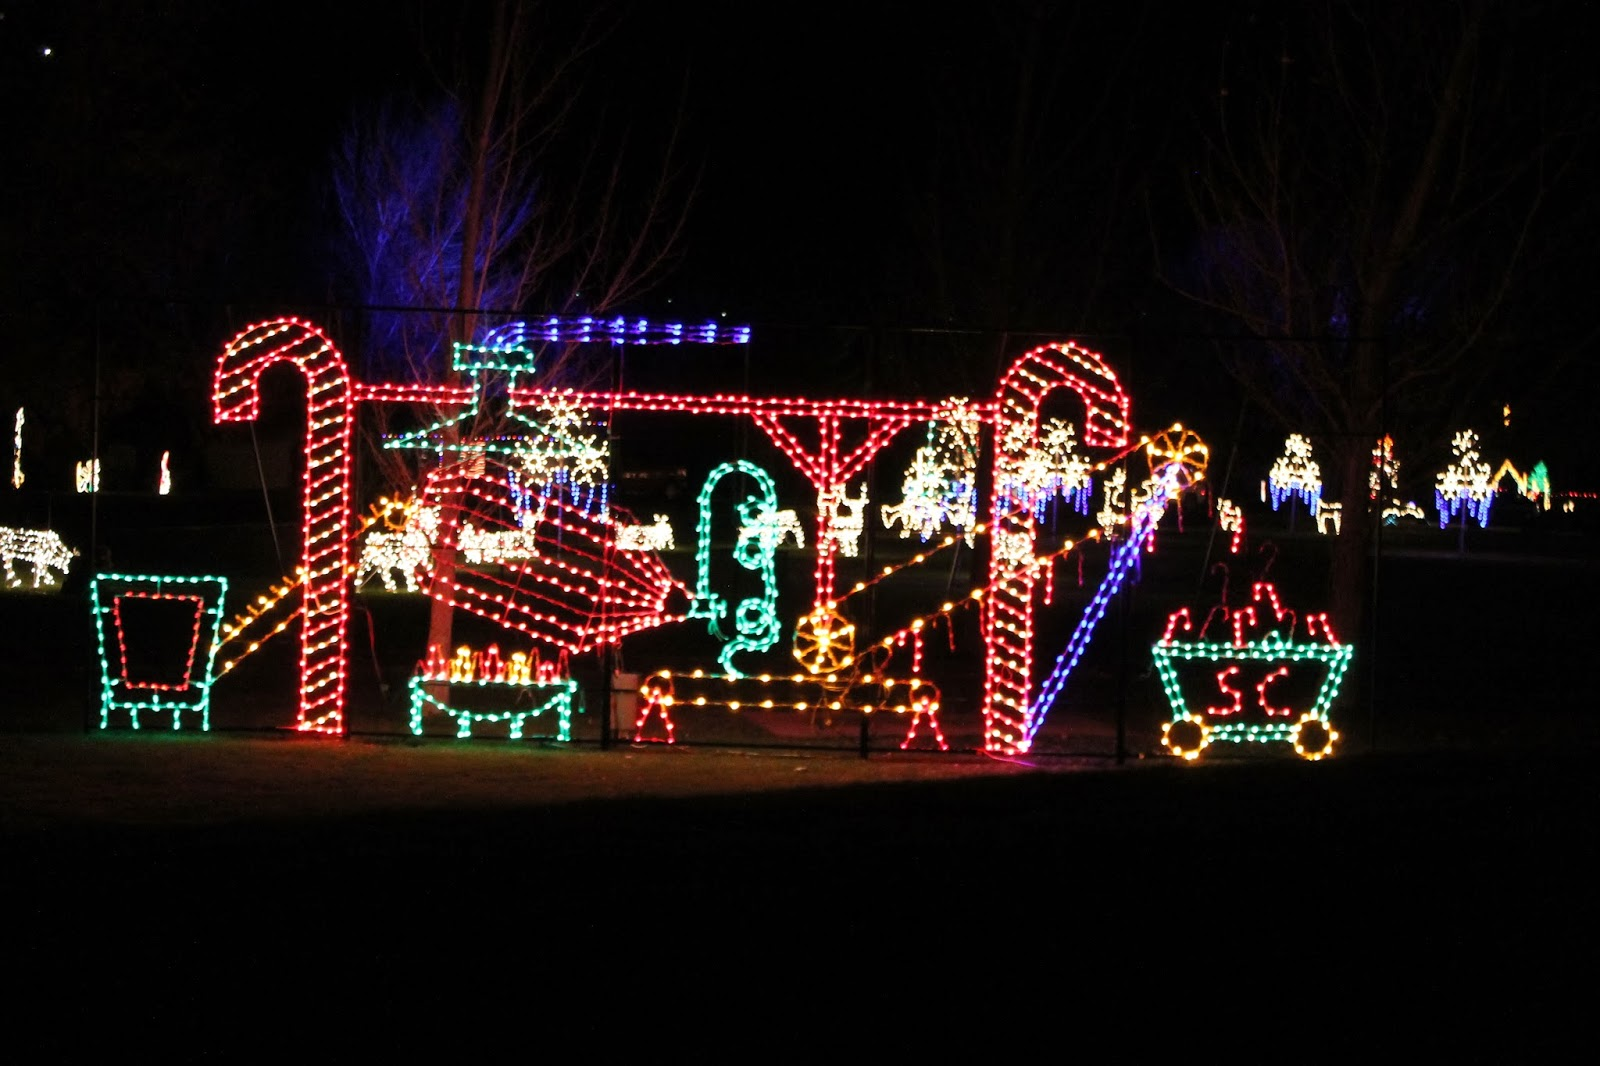 21st annual spanish fork festival of lightsenjoy a favorite local tradition as you drive through the animated festival of lights everyone will love seeing - Spanish Fork Christmas Lights